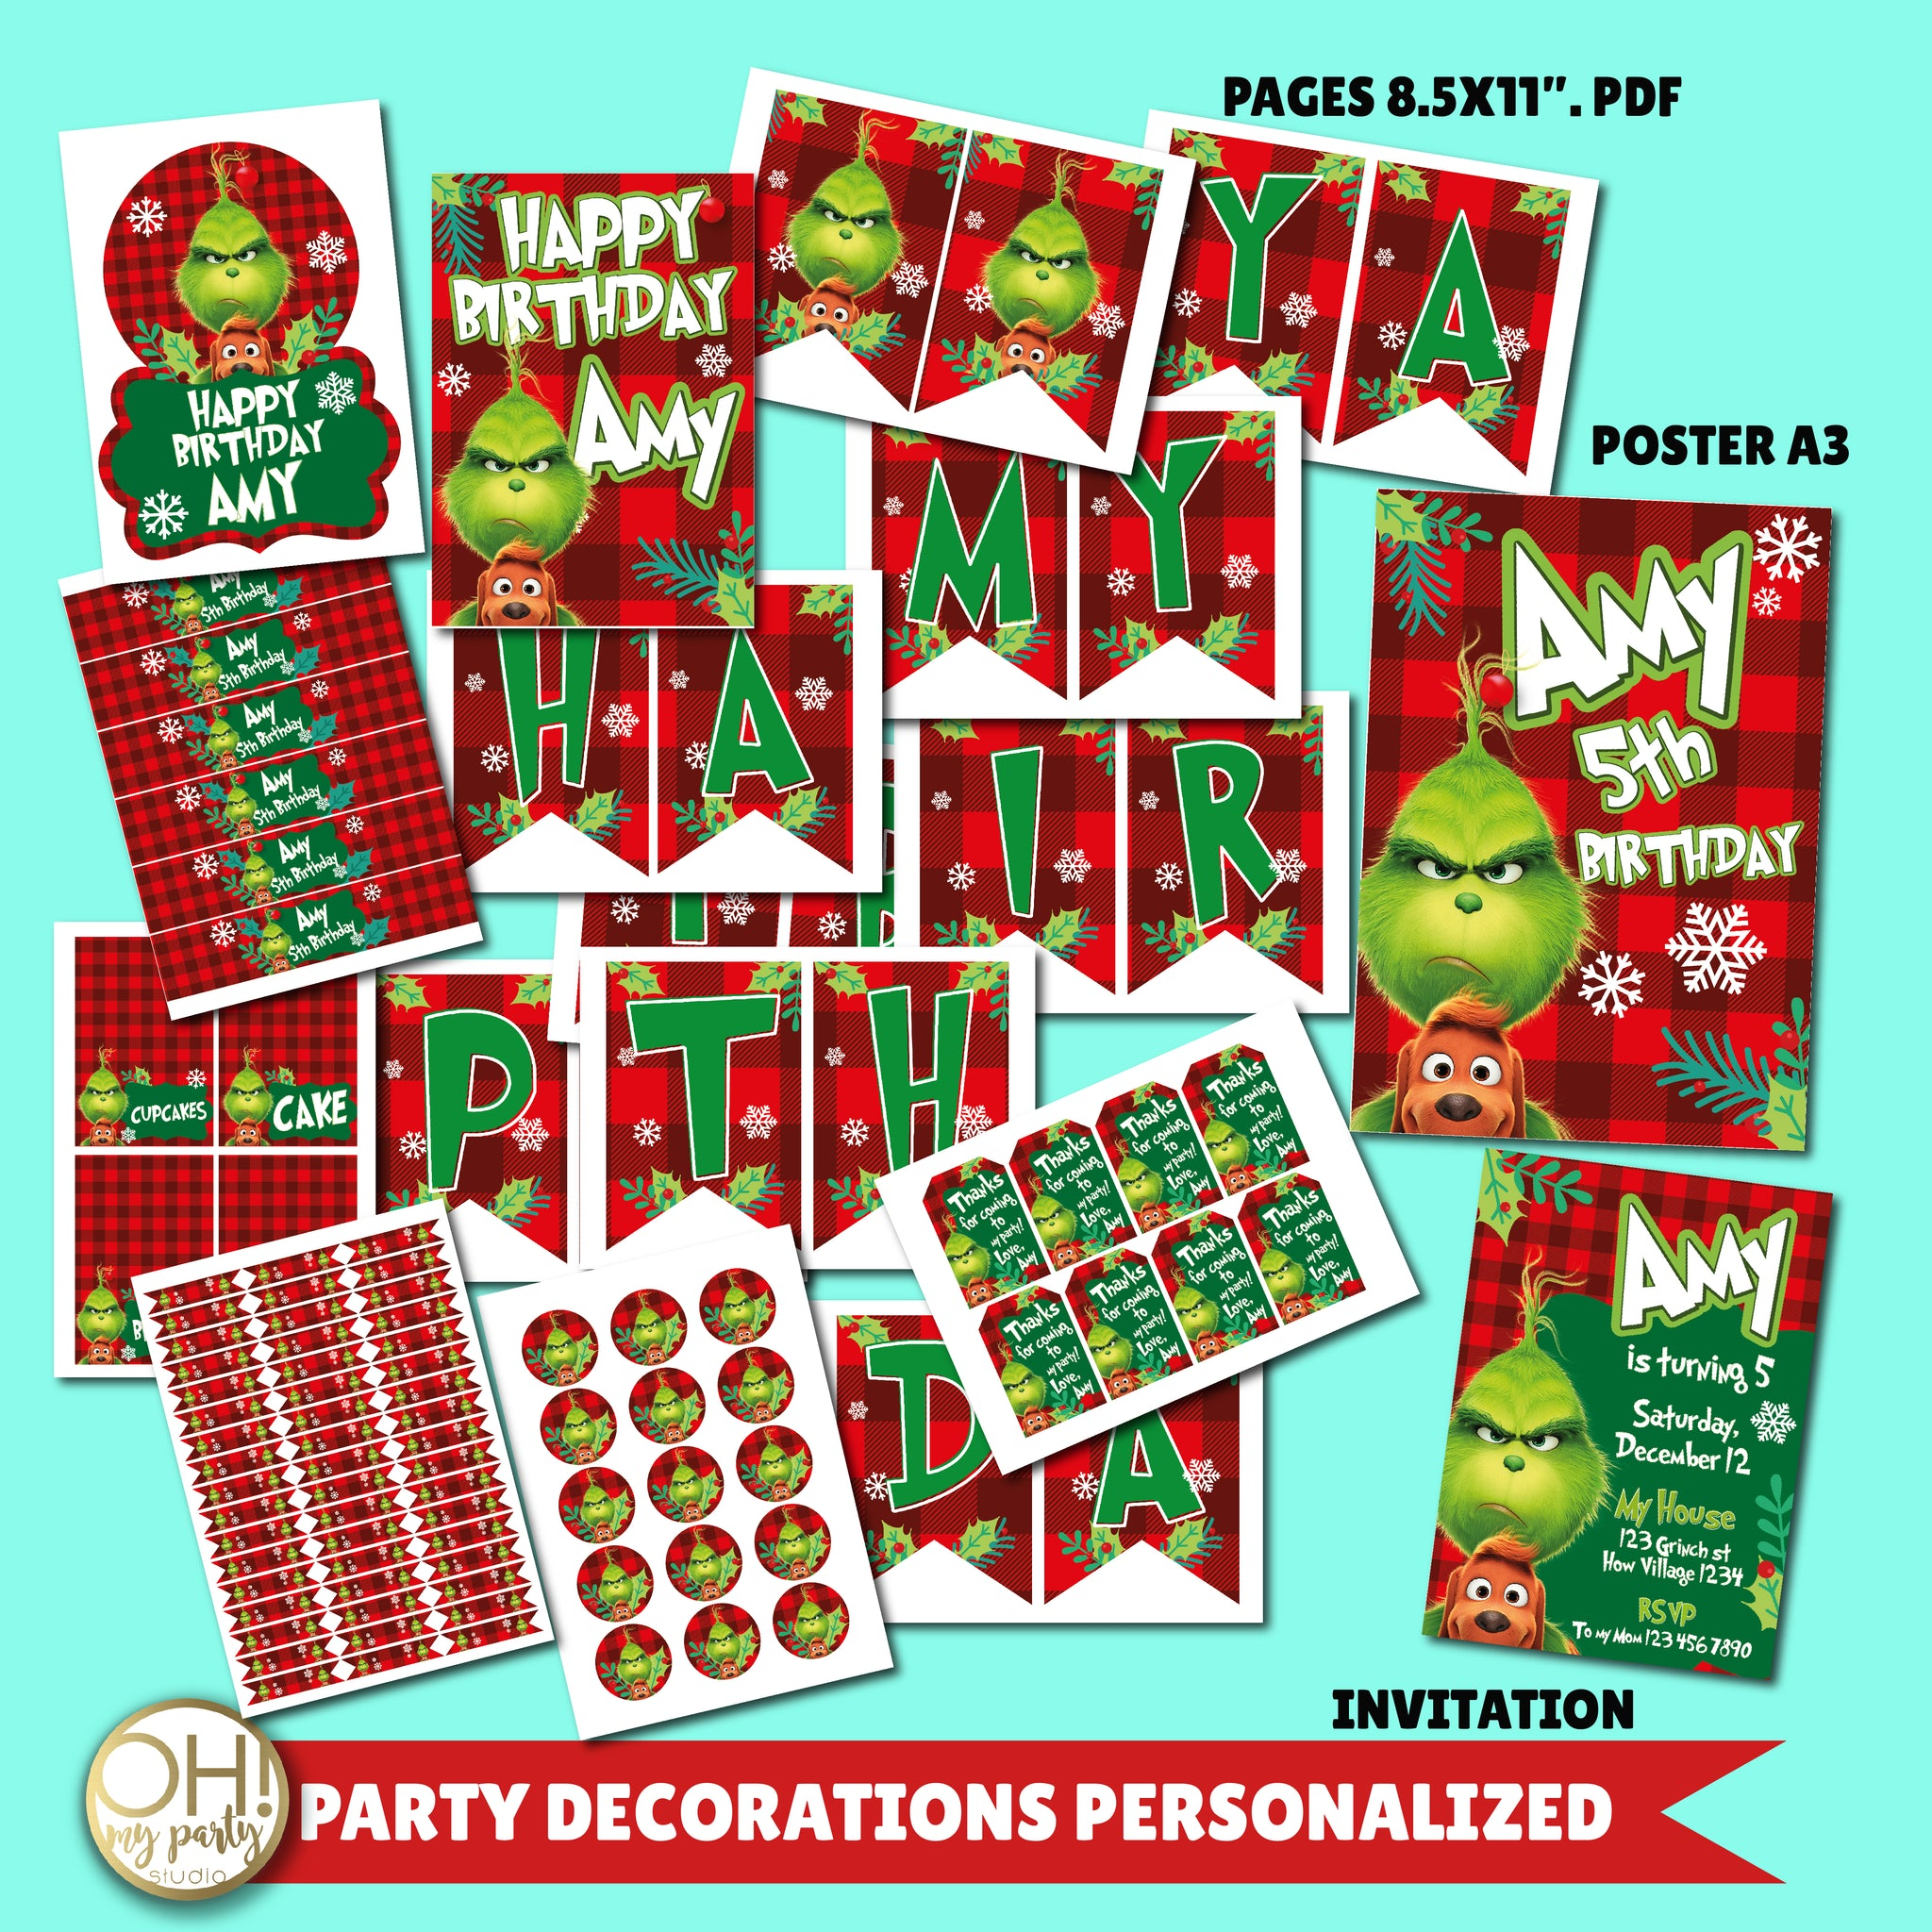 GRINCH BIRTHDAY PARTY DECORATIONS, GRINCH BIRTHDAY, GRINCH PARTY, GRINCH BIRTHDAY SUPPLIES, GRINCH PARTY IDEAS, GRINCH PARTY PRINTABLES, GRINCH PARTY DECORATIONS, GRINCH BIRTHDAY DECORATIONS,GRINCH INVITATION, GRINCH PARTY SUPPLIES, GRINCH BIRTHDAY INVITATION, GRINCH BIRTHDAY PARTY INVITATION, GRINCH DIGITAL INVITATION, GRINCH INVITE, GRINCH BANNER, GRINCH BIRTHDAY PARTY DECORATIONS